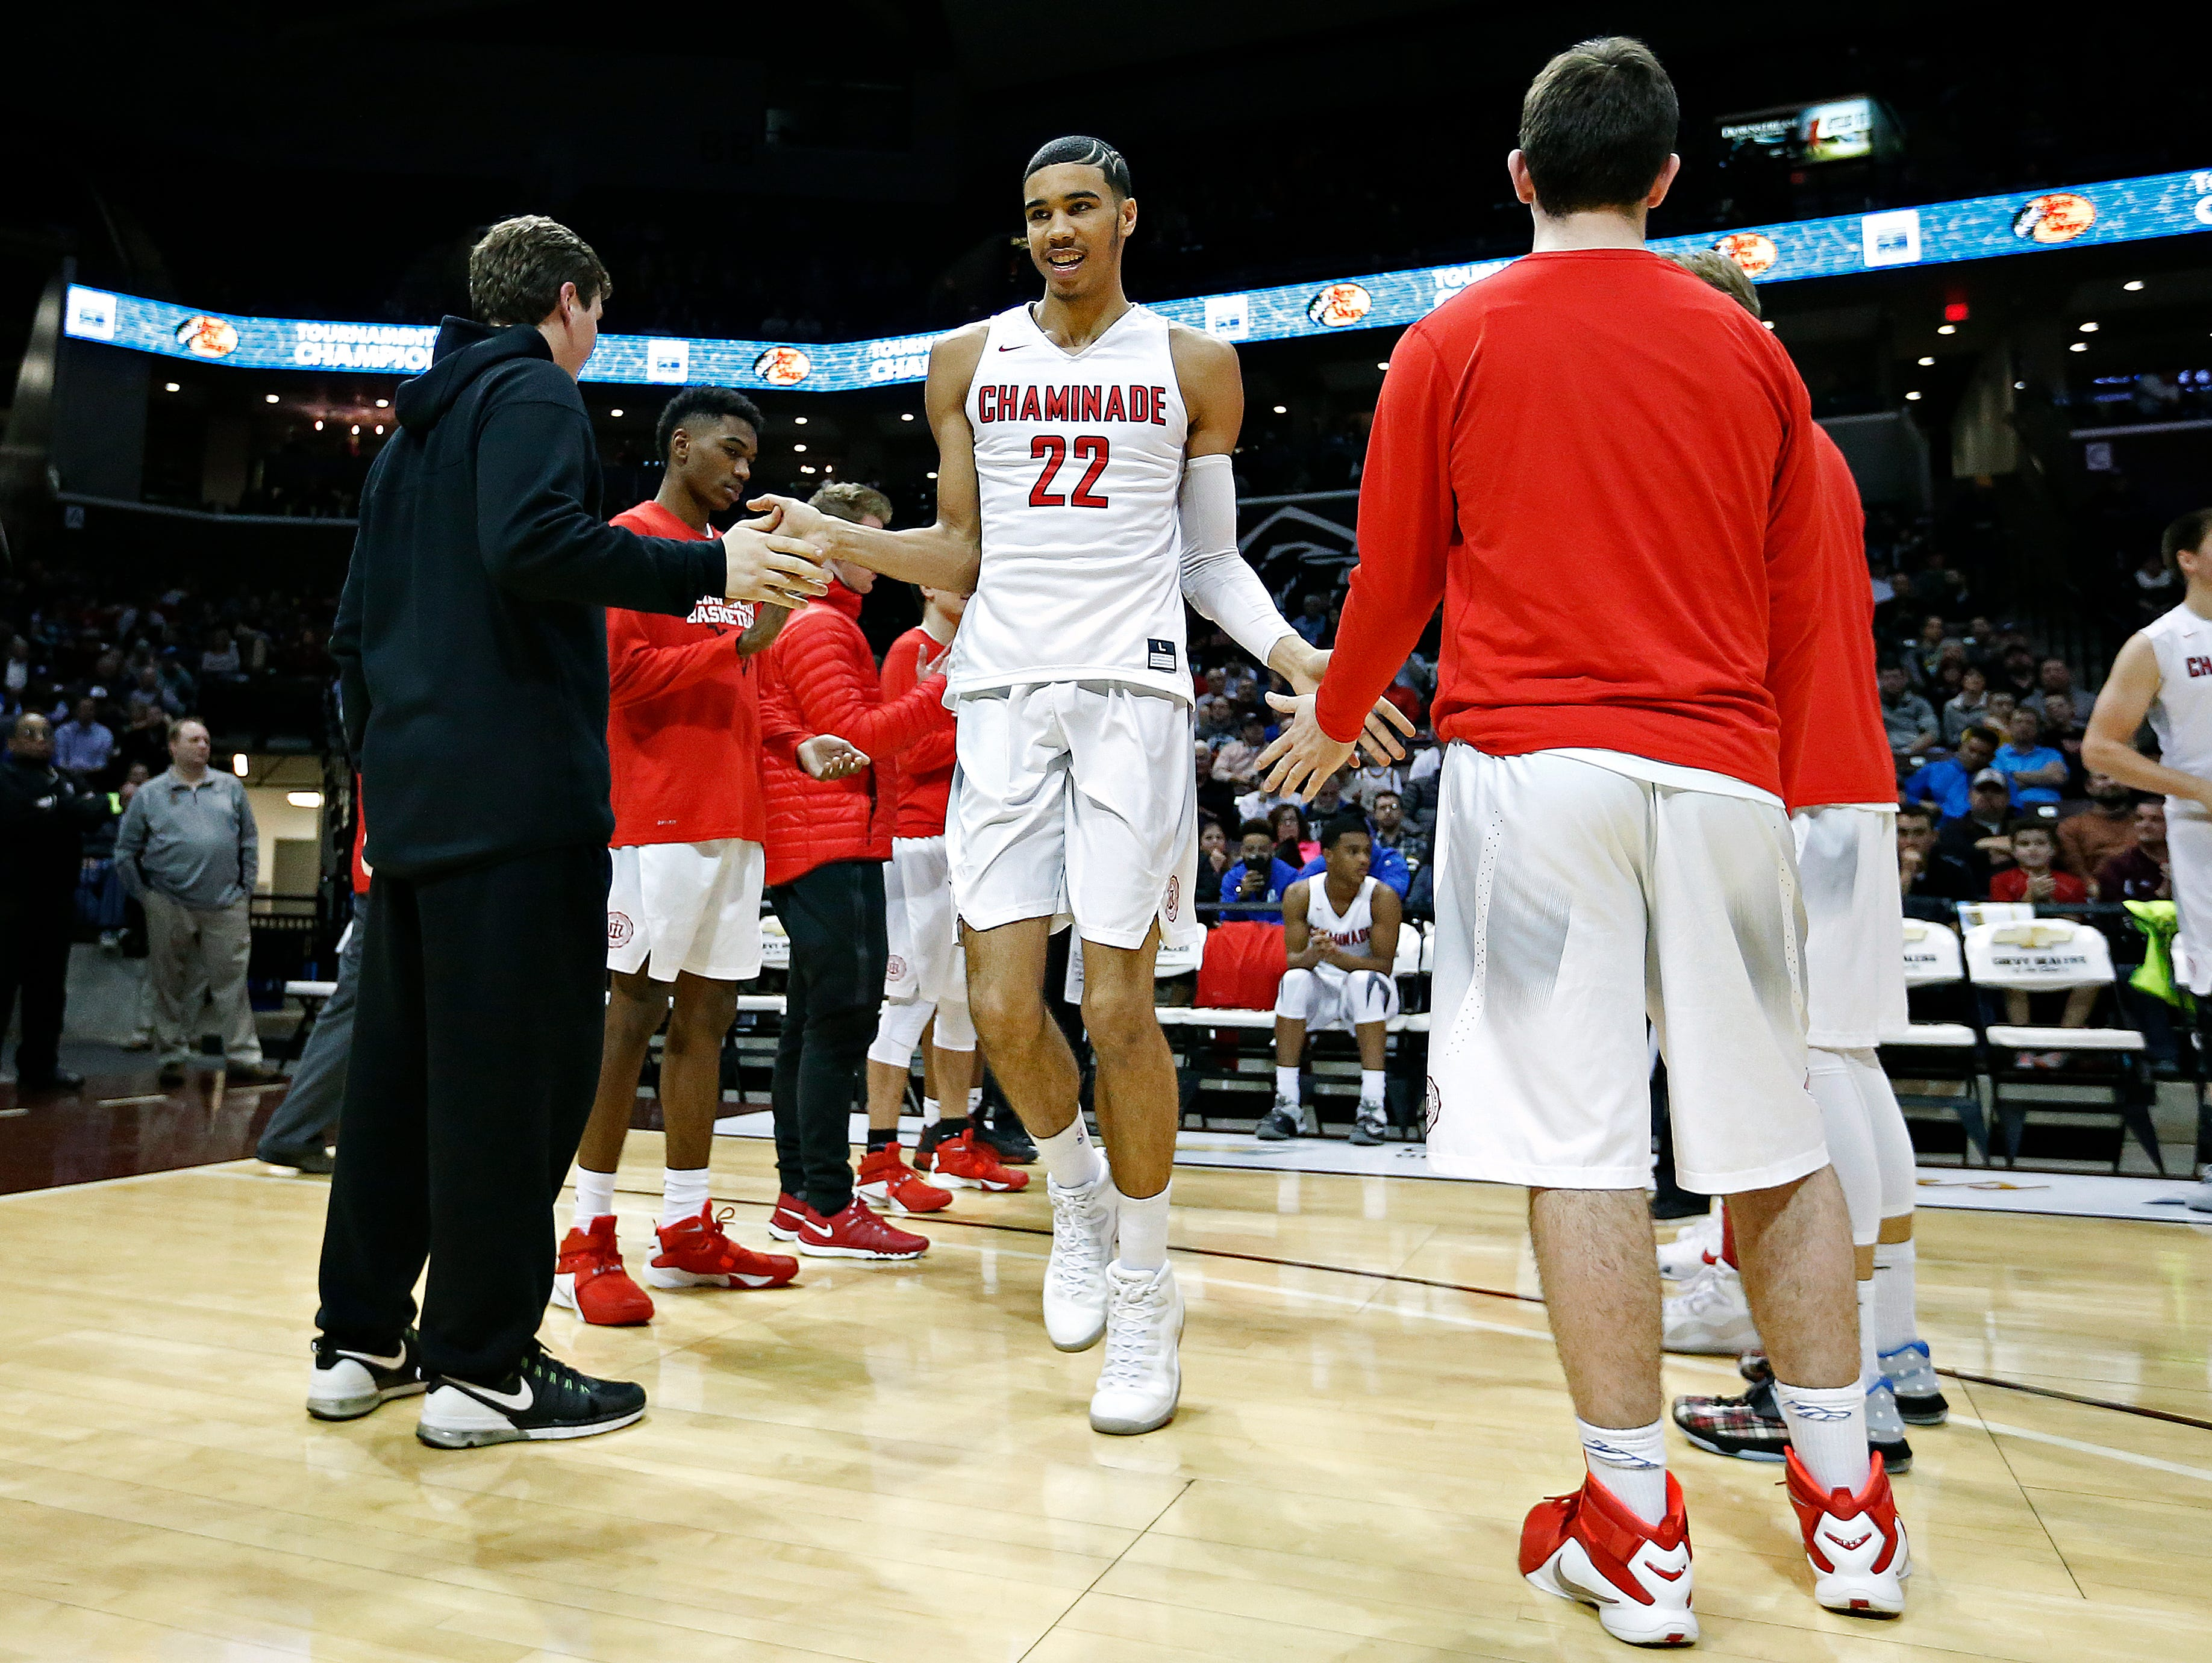 Chaminade College Preparatory School forward Jayson Tatum (22) enter the court prior to the start of the 2016 Tournament of Champions first round game between Chaminade College Preparatory School (St. Louis, Mo.) and Christ The King High School (Middle Village, N.Y.) at JQH Arena in Springfield, Mo. on Jan. 14, 2015. The Chaminade Red Devils won the game 67-48.